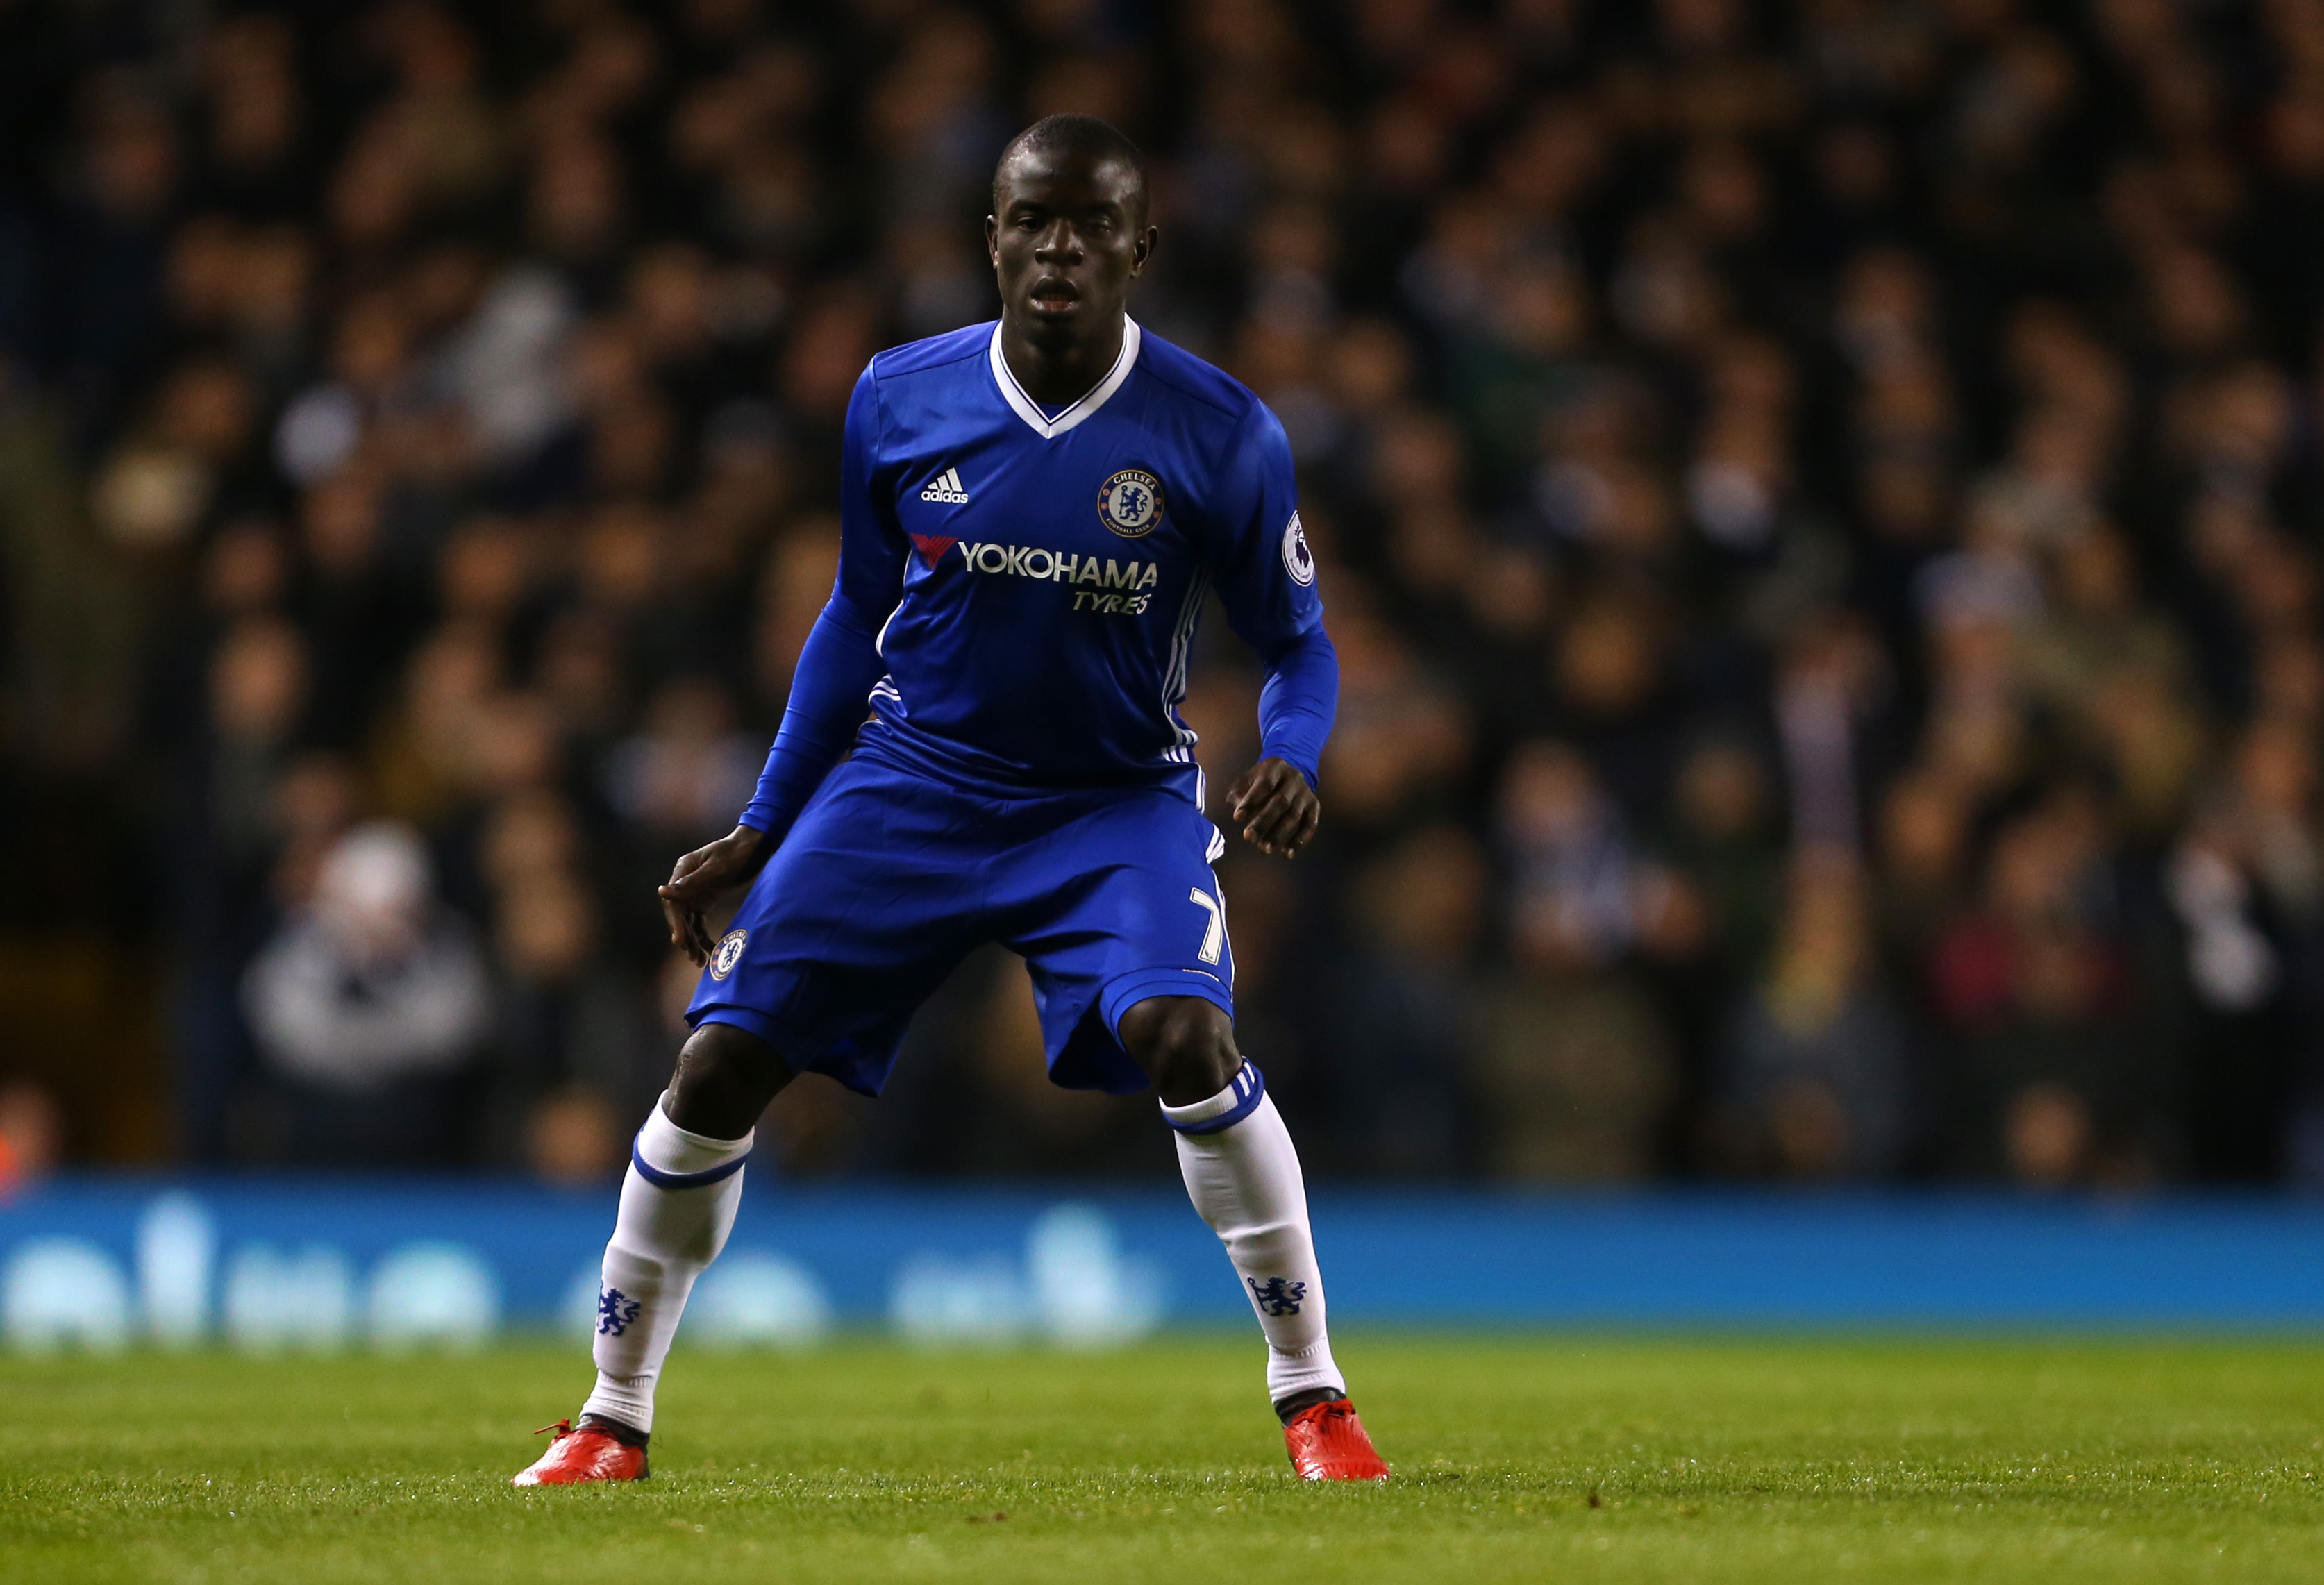 Chelsea signing N'Golo Kante was cheap at £32million, says Robbie Savage